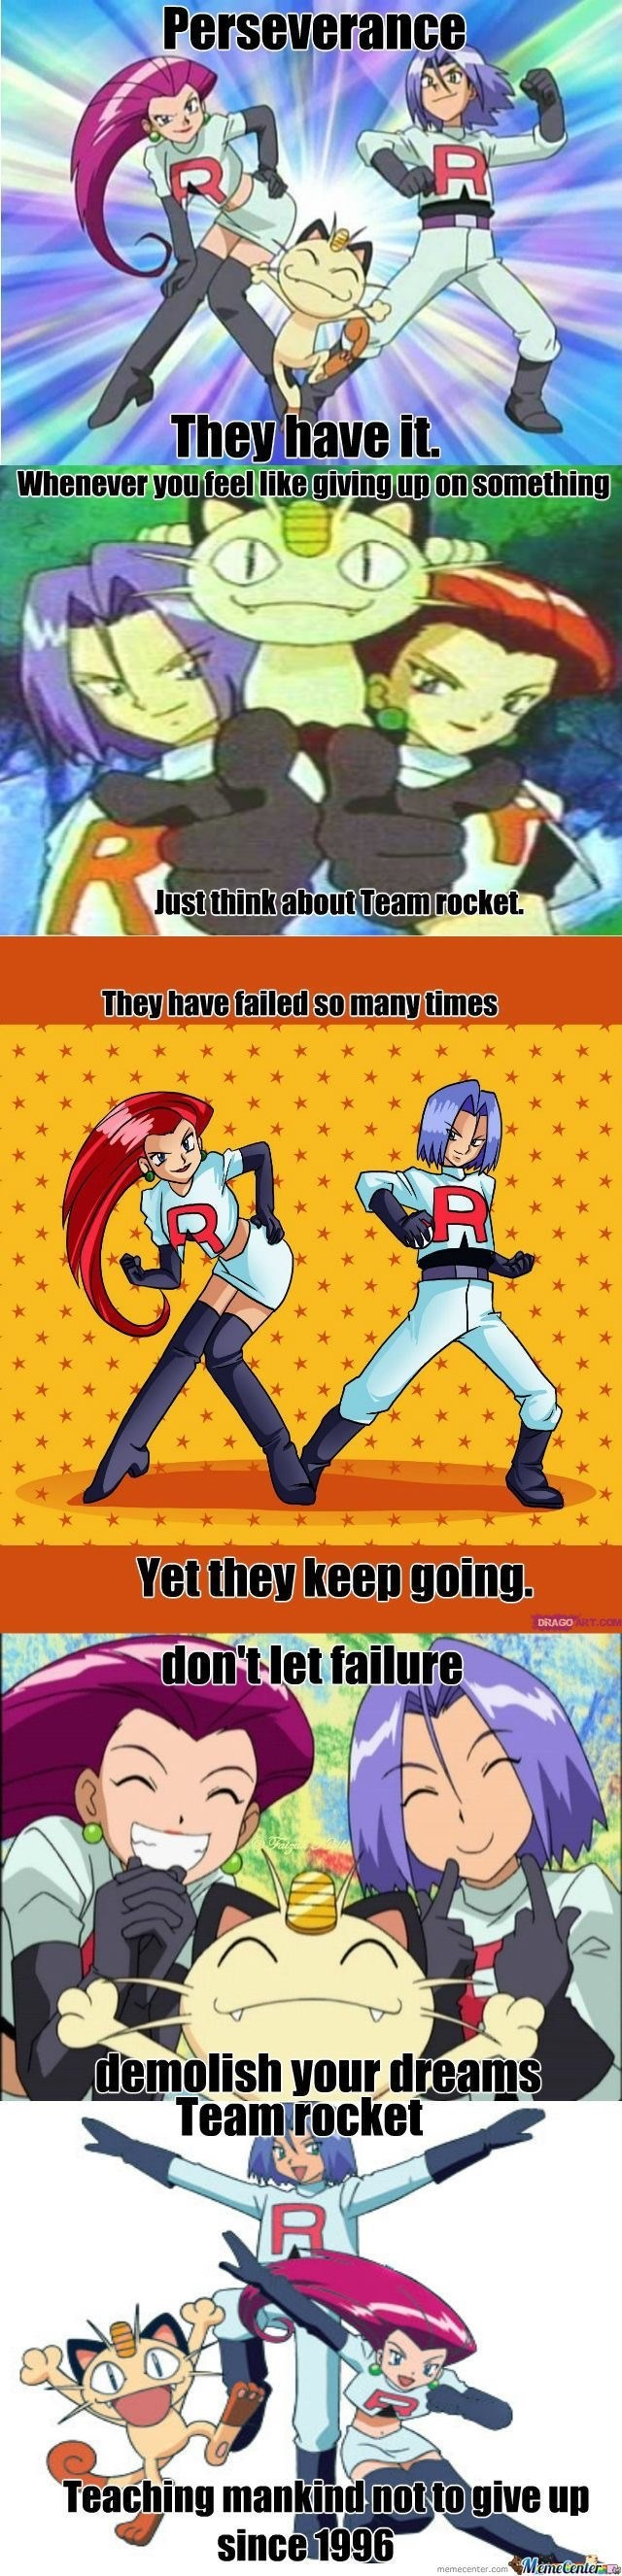 Cartoon - Perseverance They have it. Whenever you feellike givingup on something Just think about Team rocket They have failed so many times Yet they keep going. DRAGO ART.co don'tlet failure demolish yourdreams Teamrocket R Teaching mankind not togive up since 1996 MemeCenterae